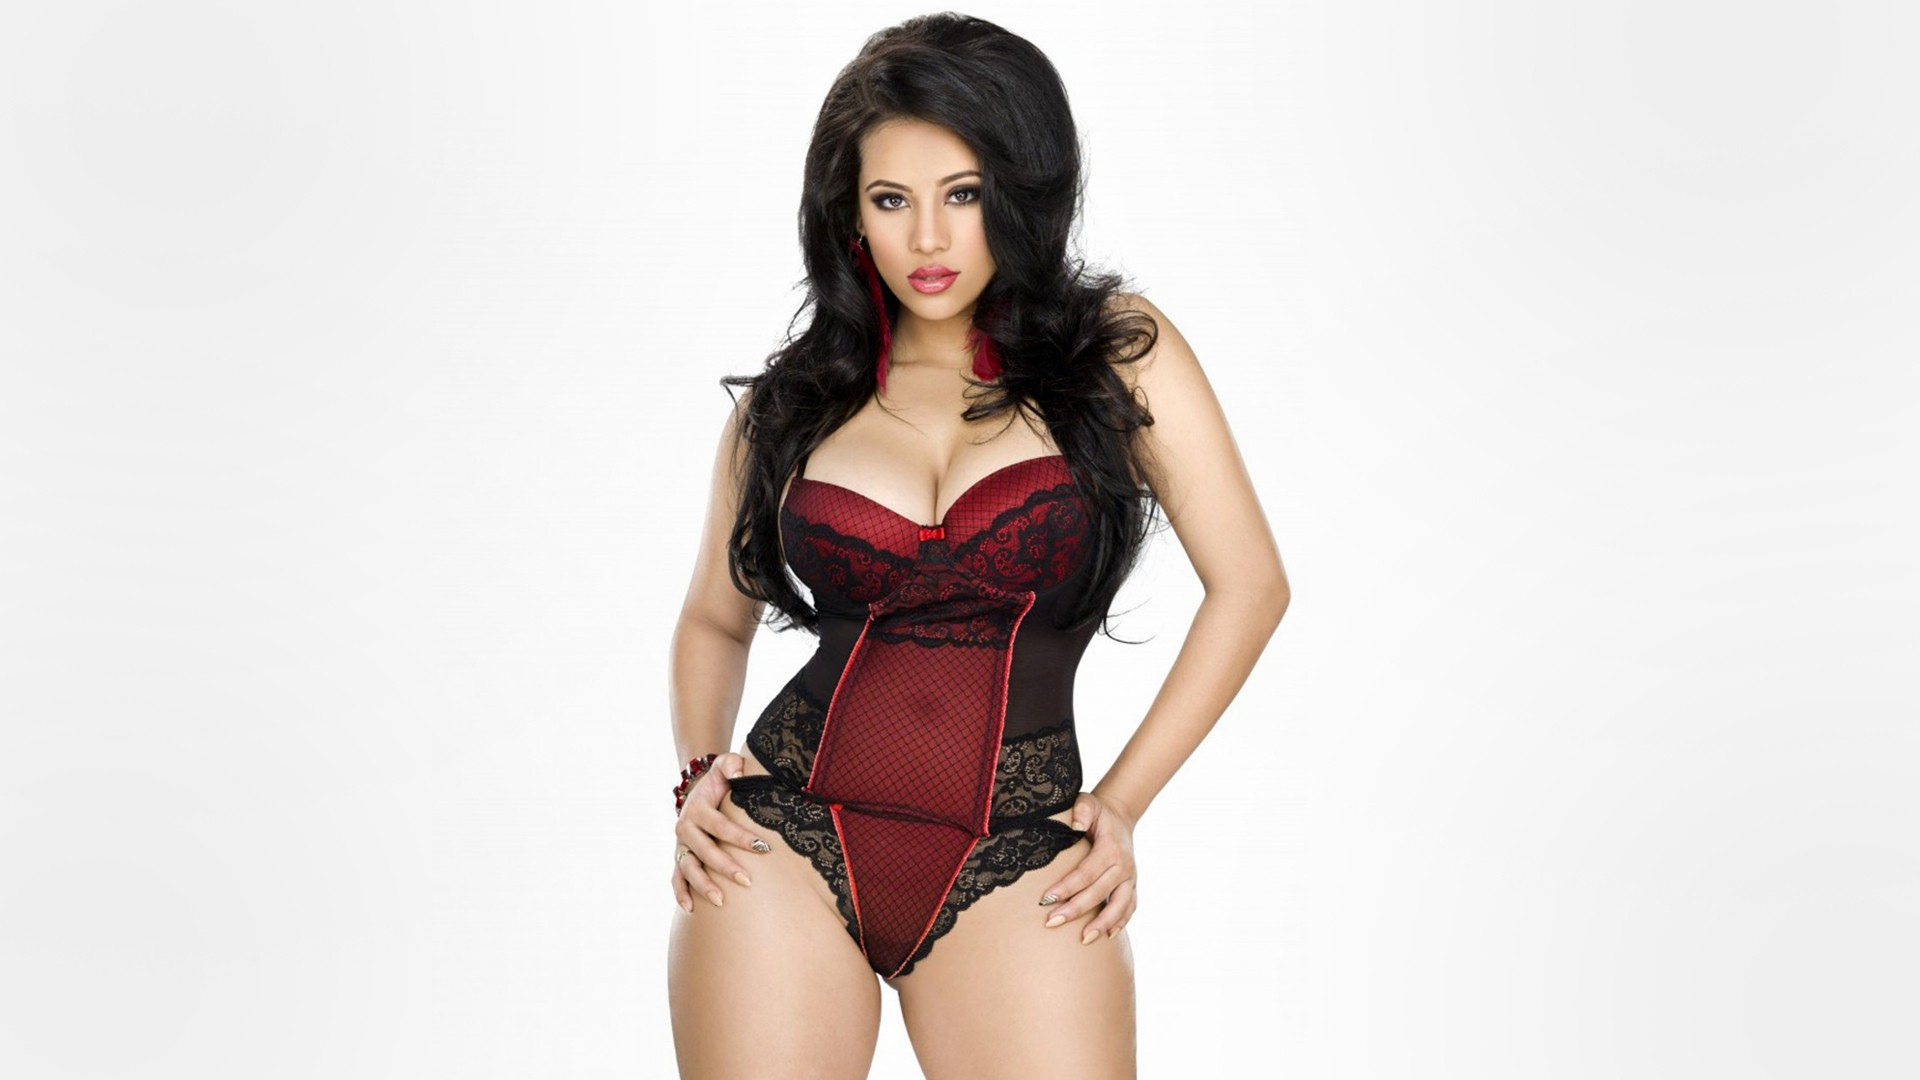 Pictures Of Cyn Santana